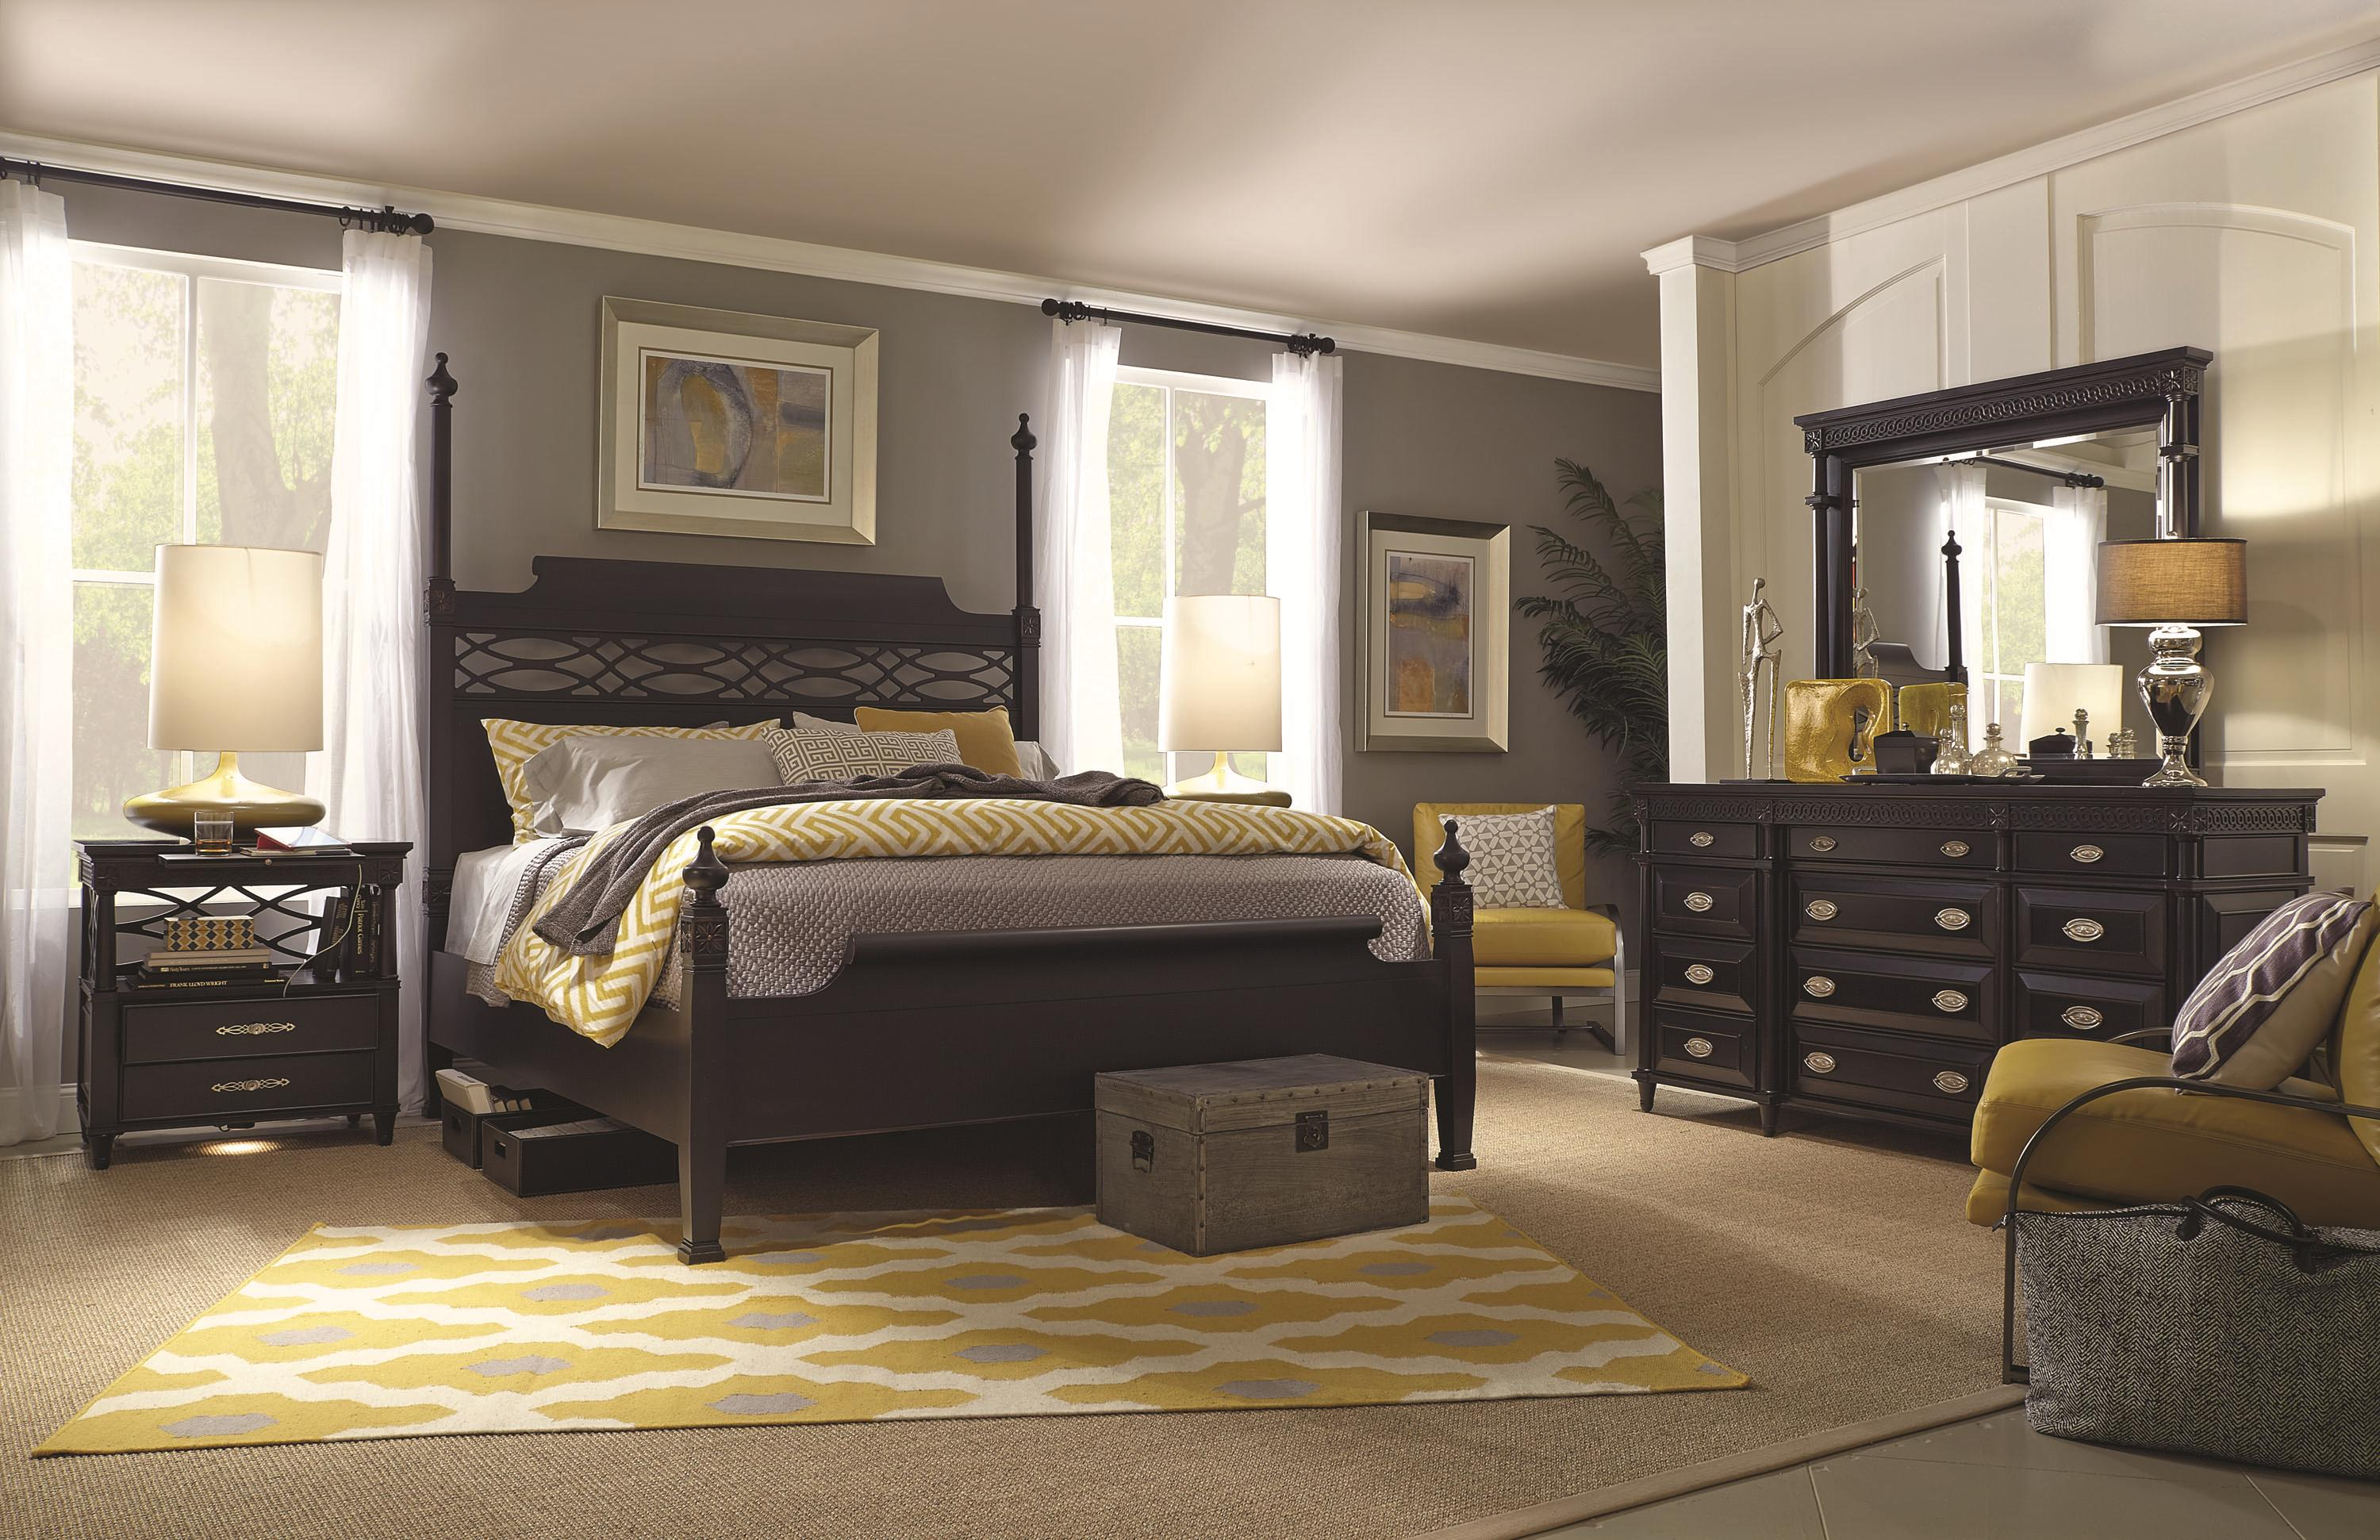 Aspenhome Young Classics King Size Chesapeake Poster Bed Belfort Furniture Poster Beds